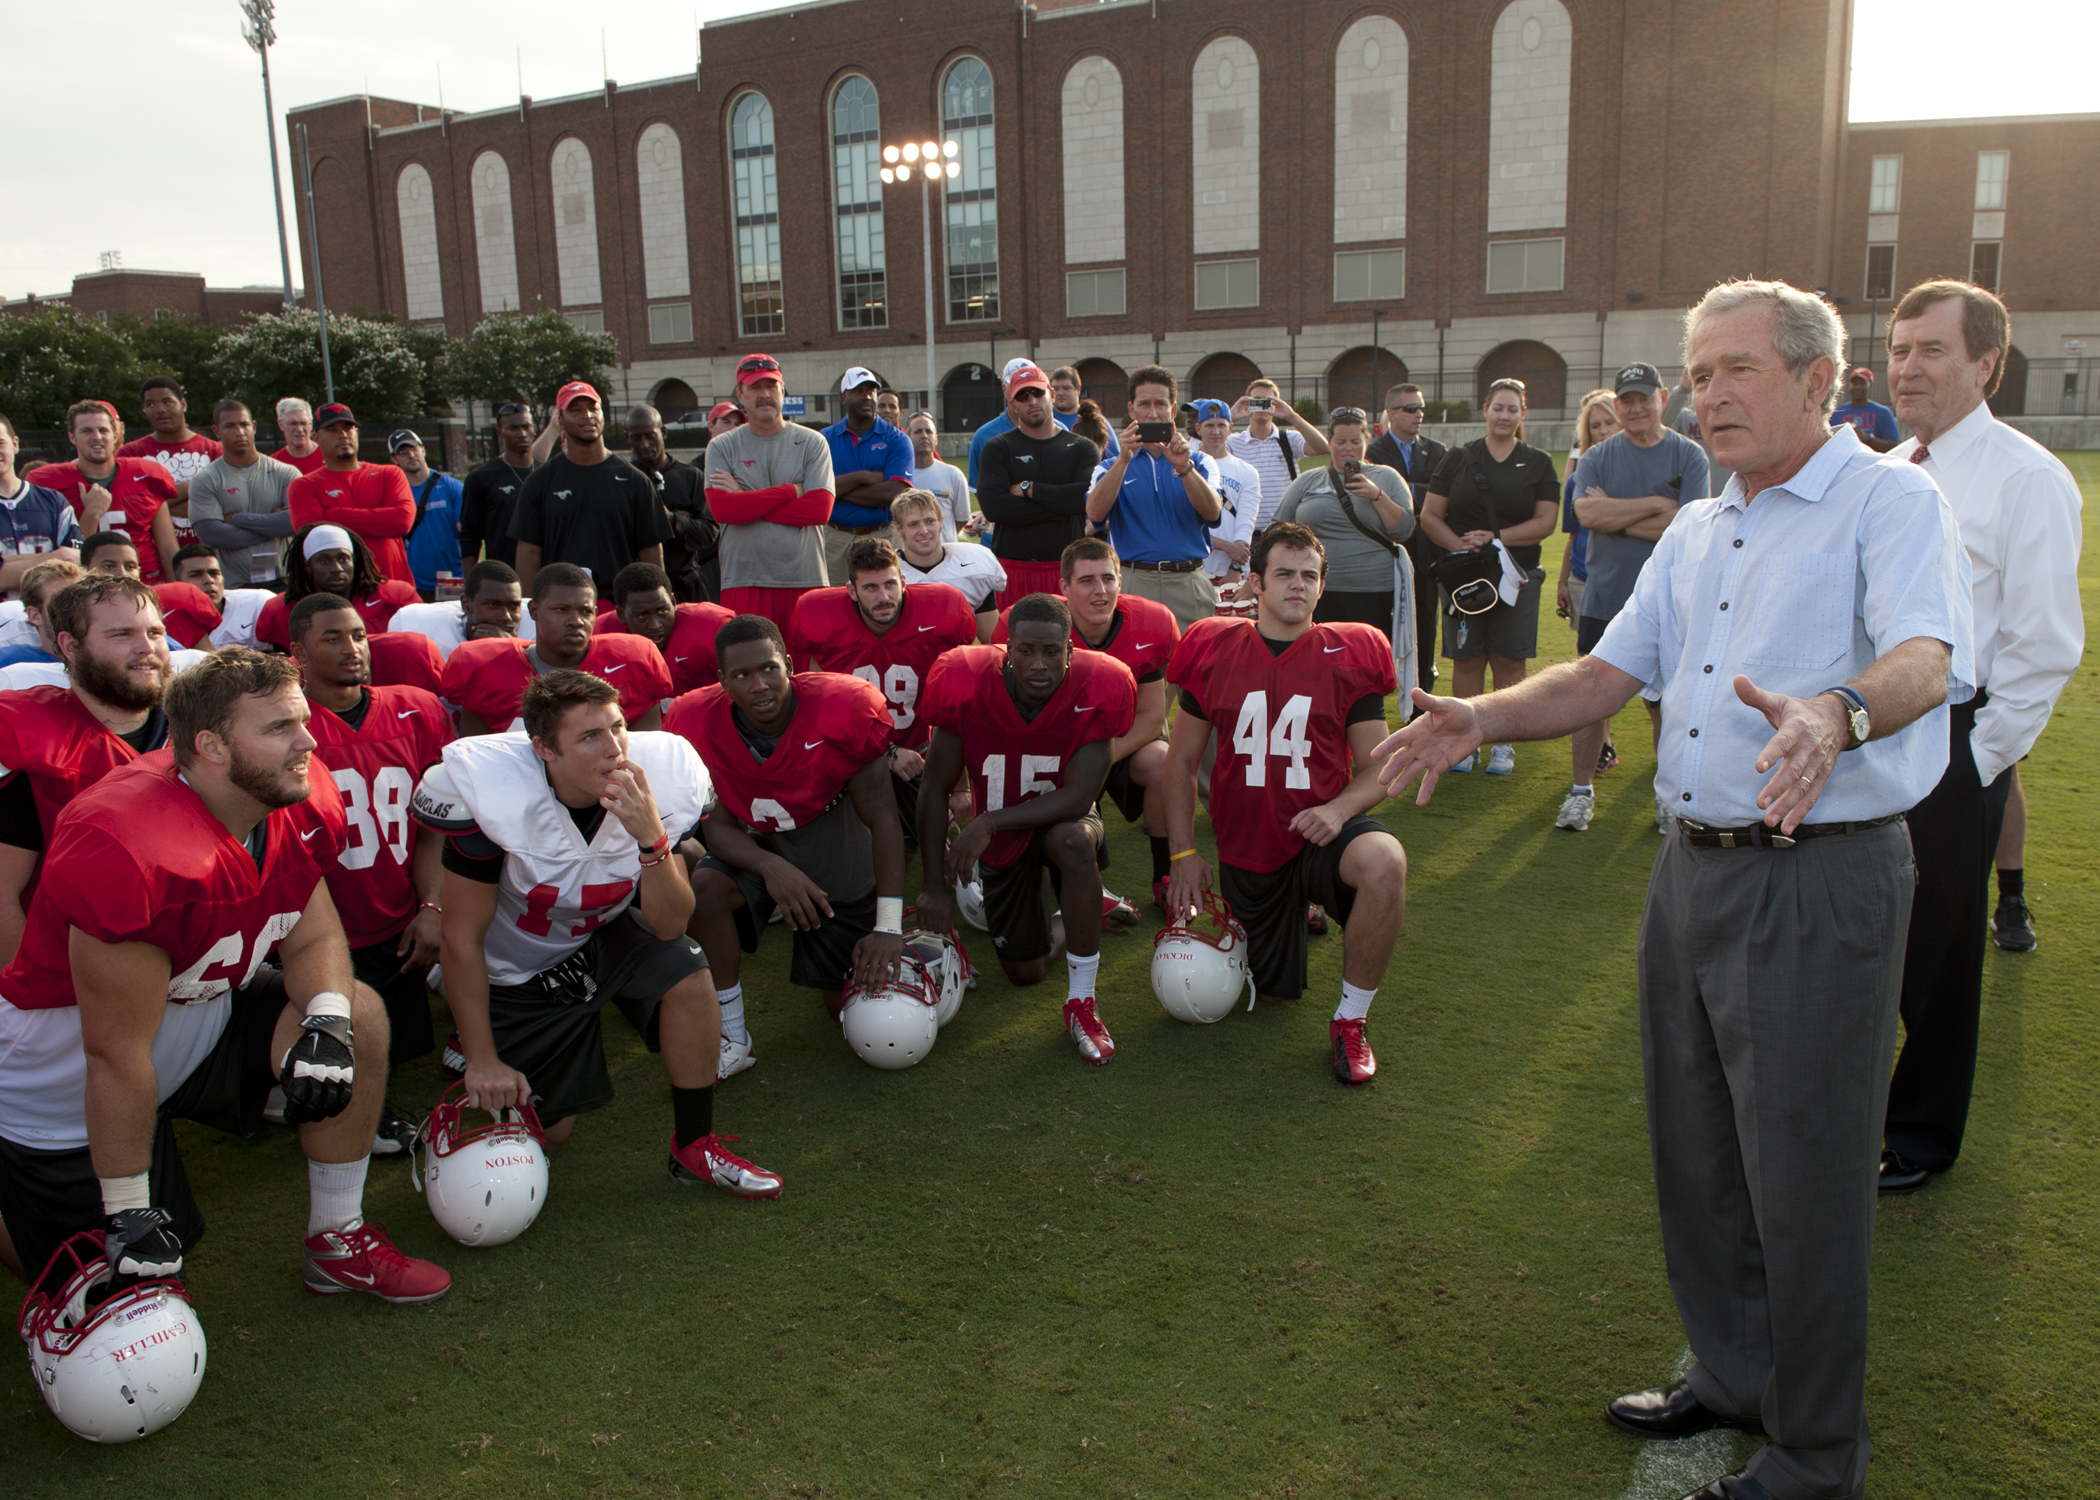 Former President George W. Bush at a SMU Mustangs football practice.